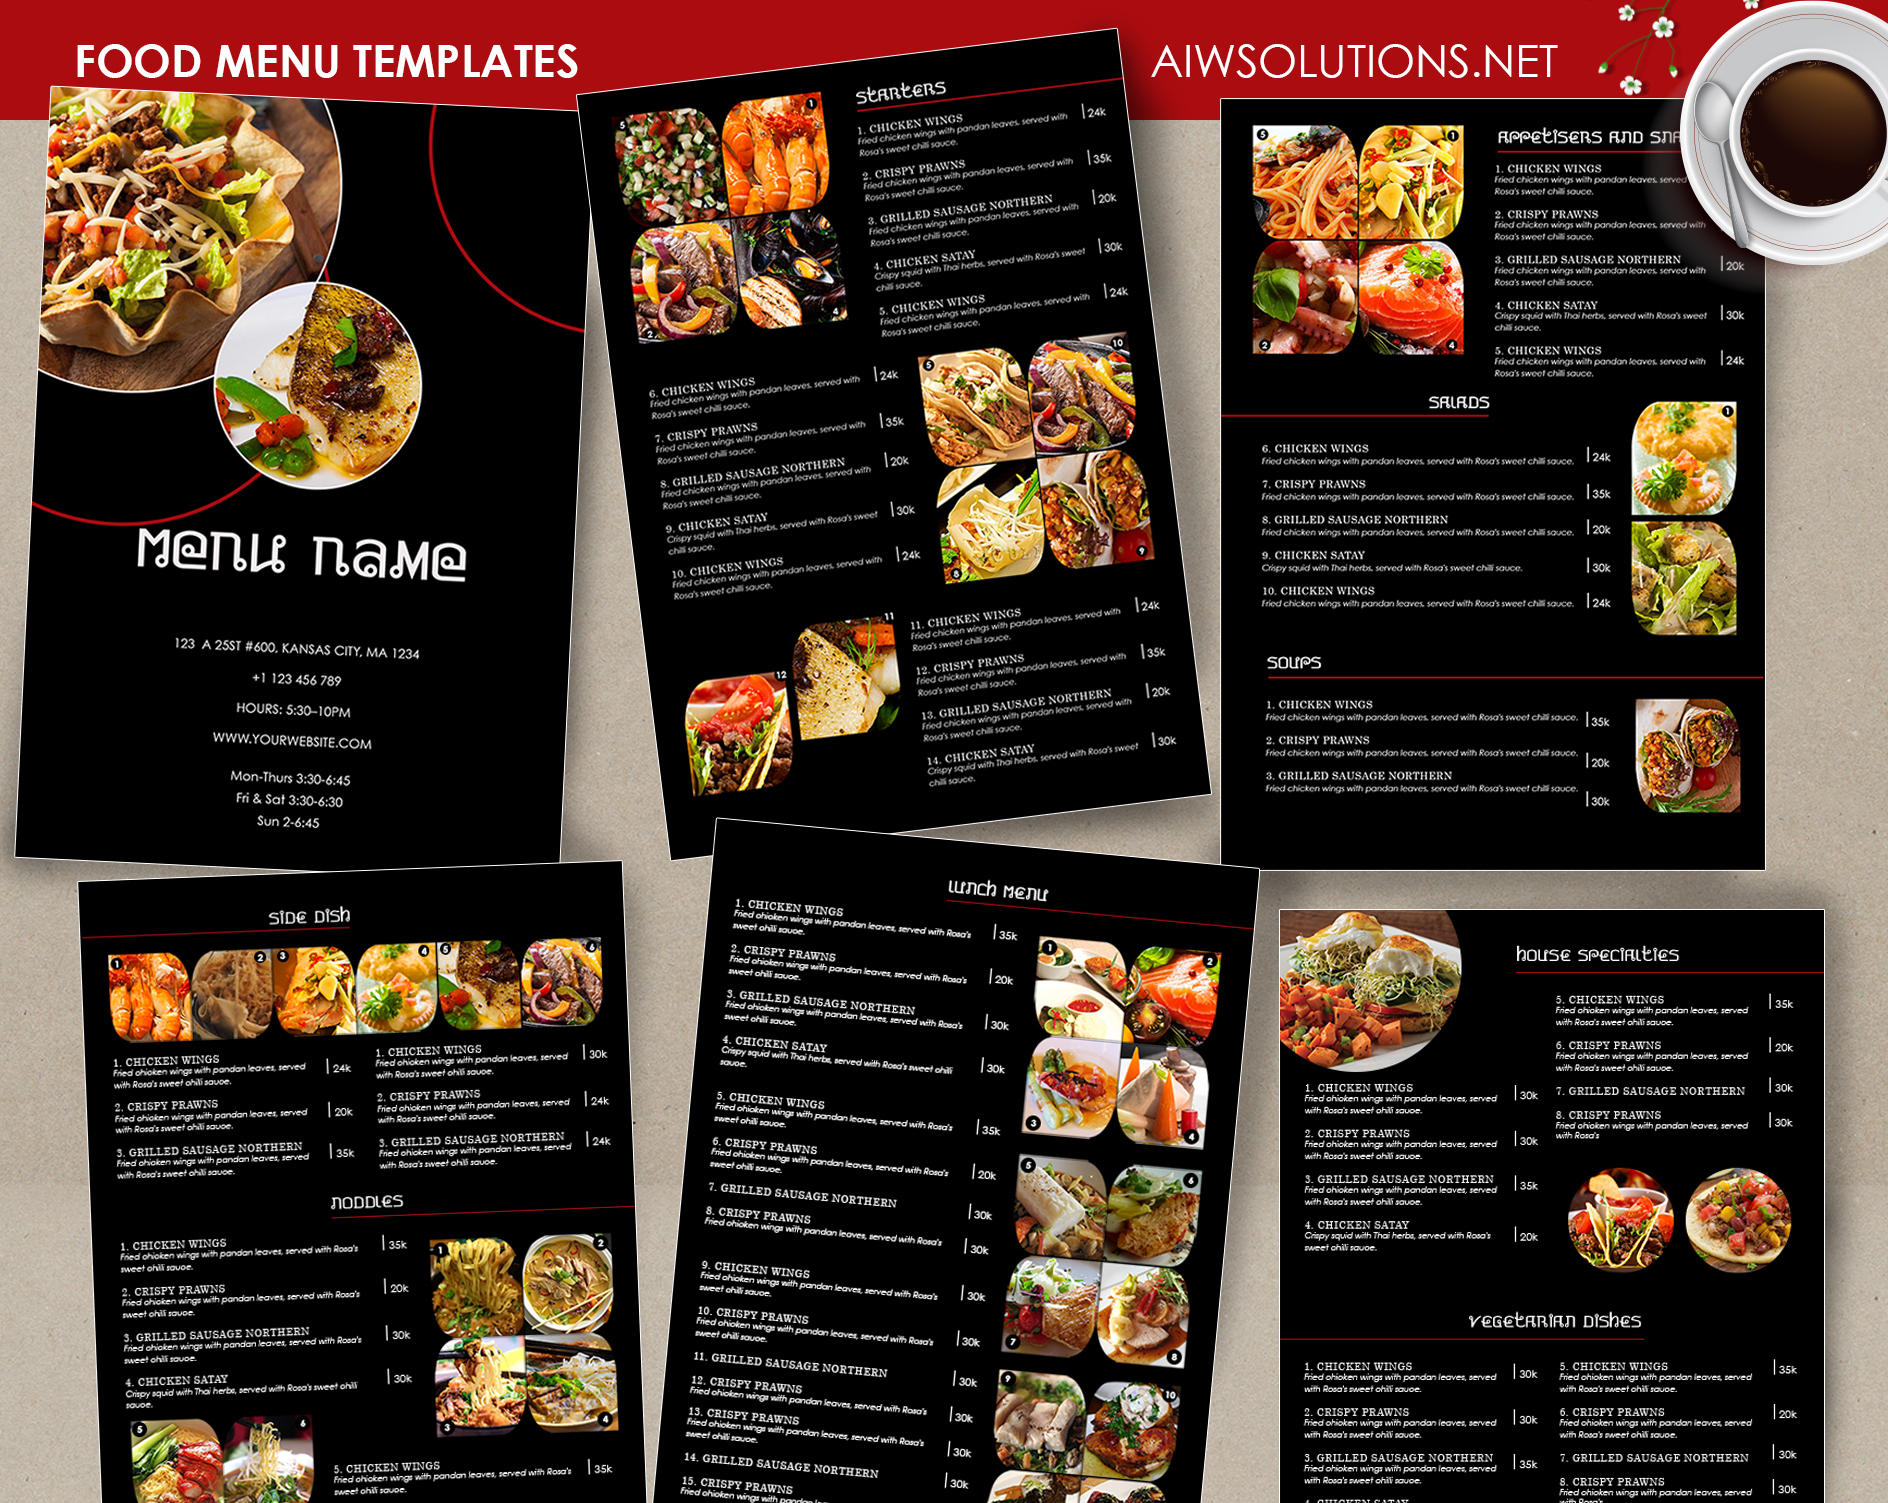 Design templates menu templates wedding menu food for Cuisine restaurant